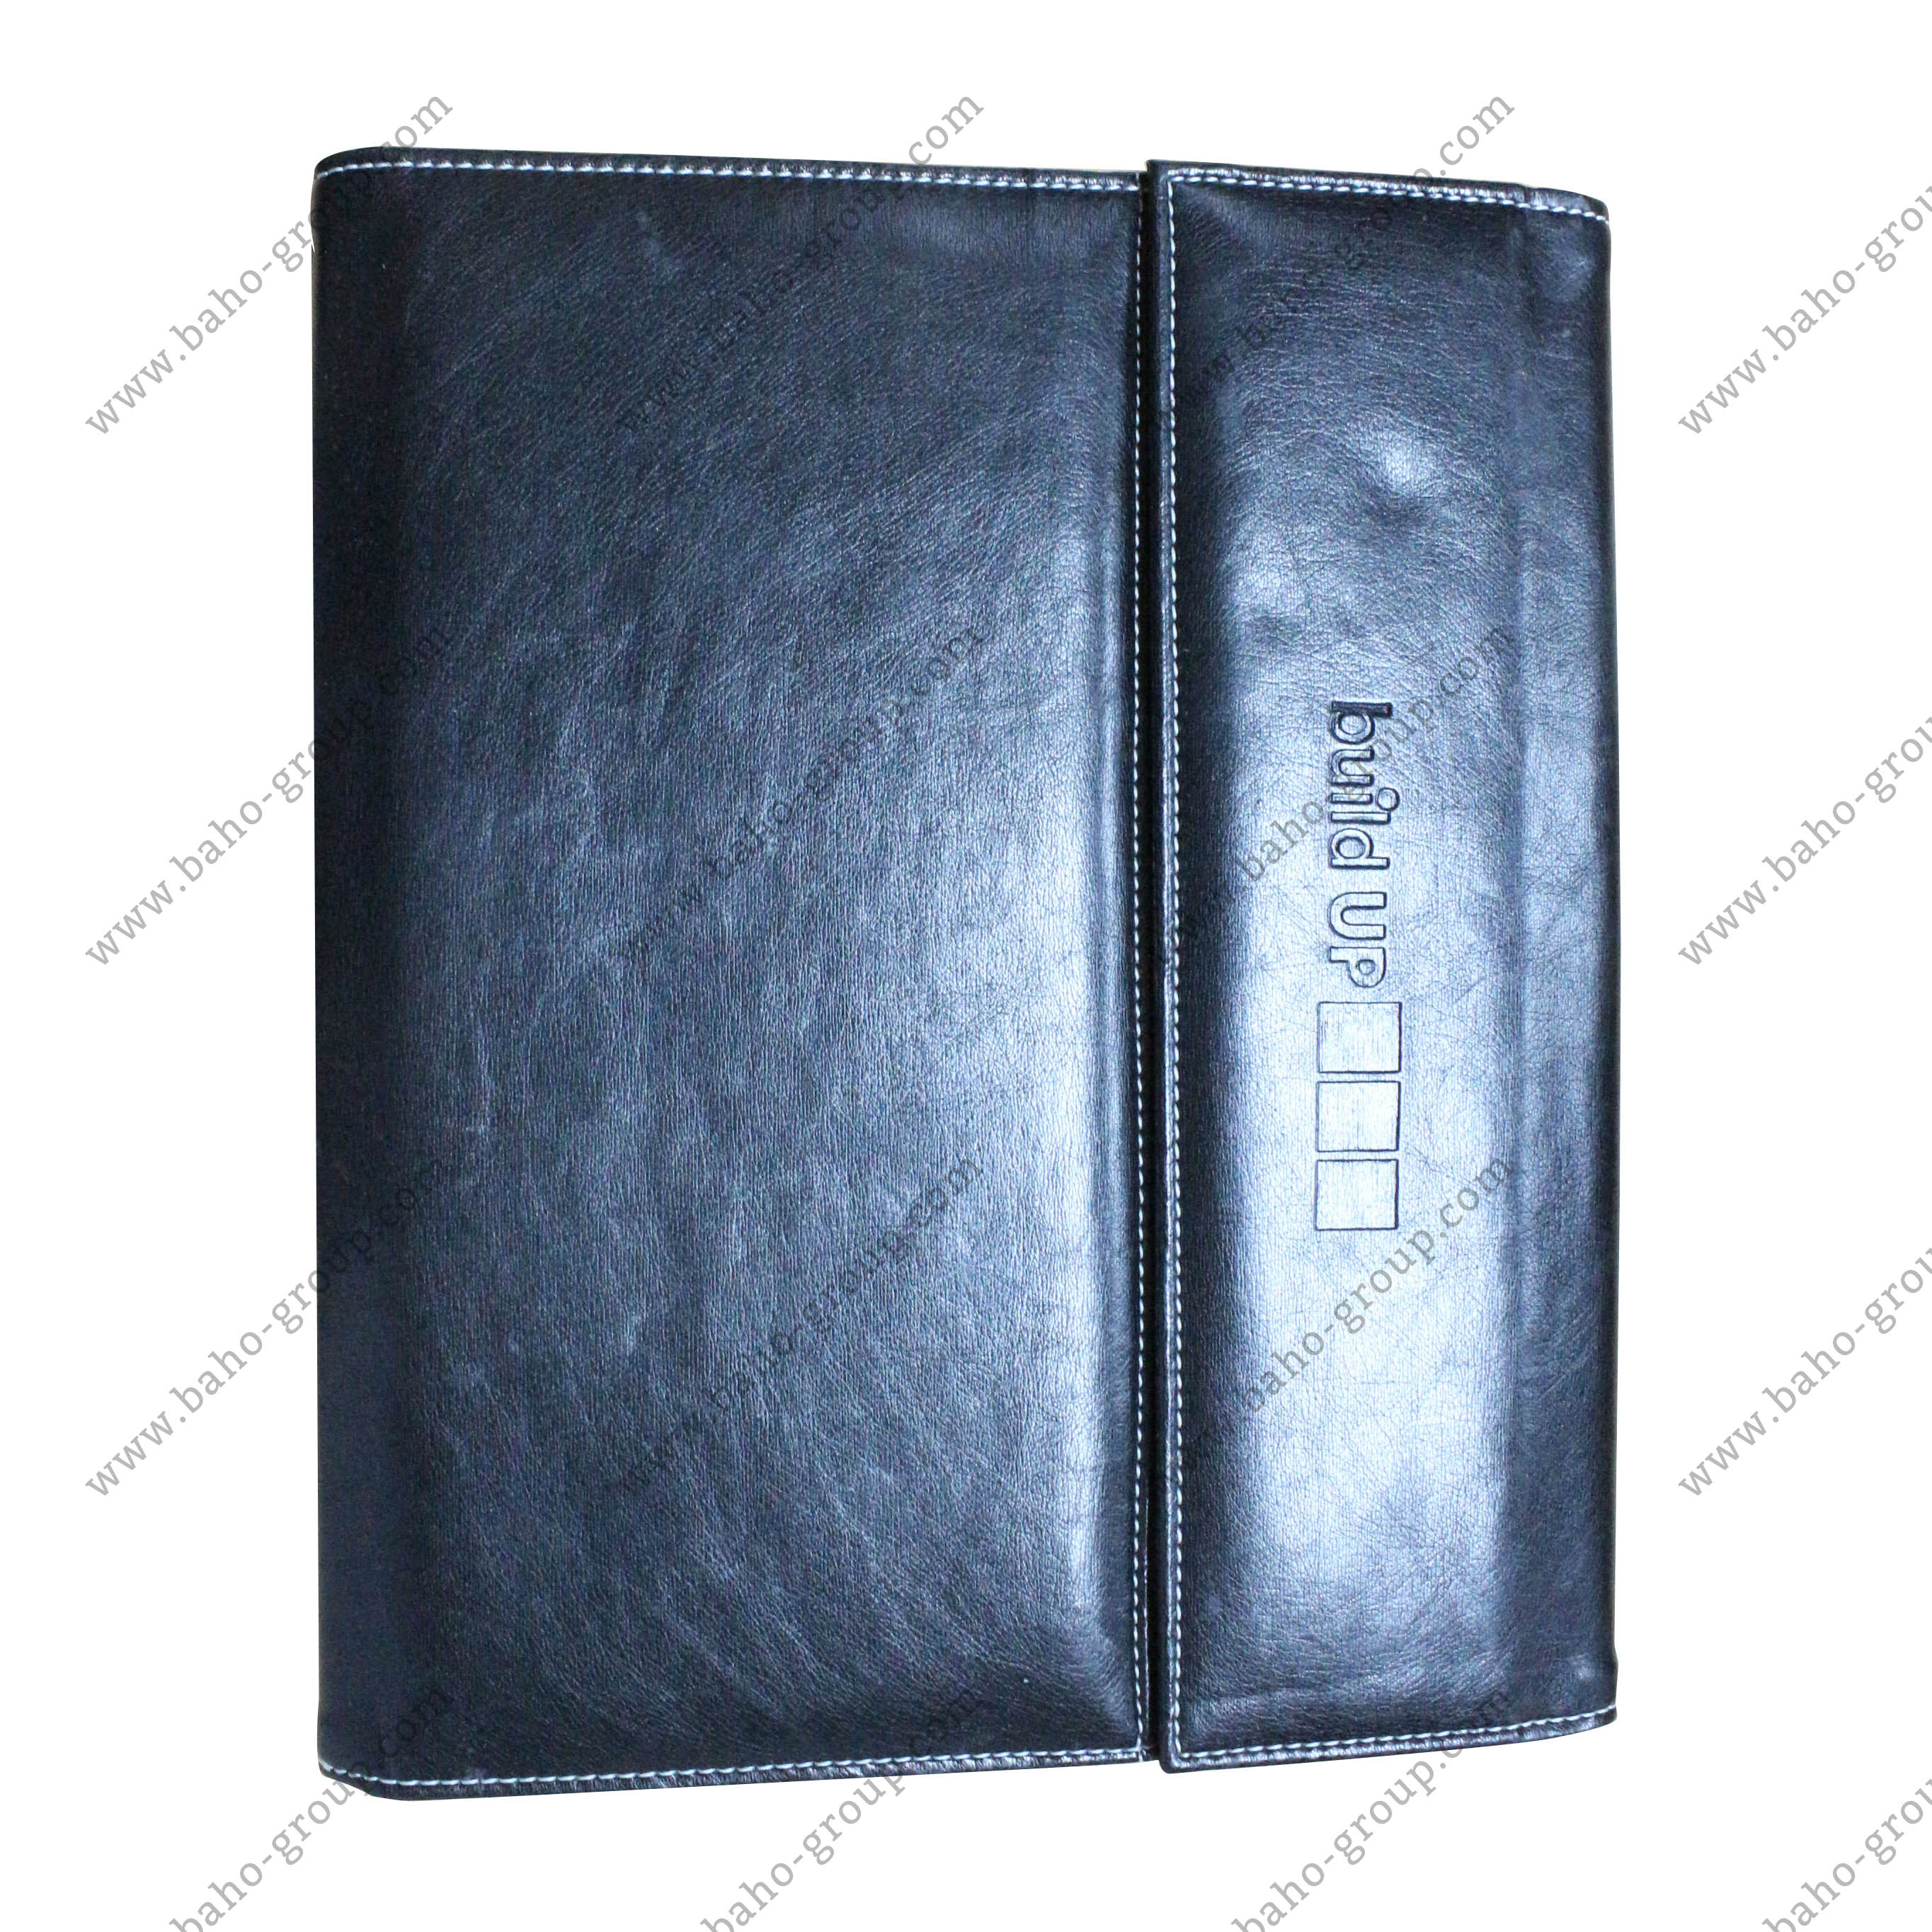 Build Up PU Leather iPad Holder Folder